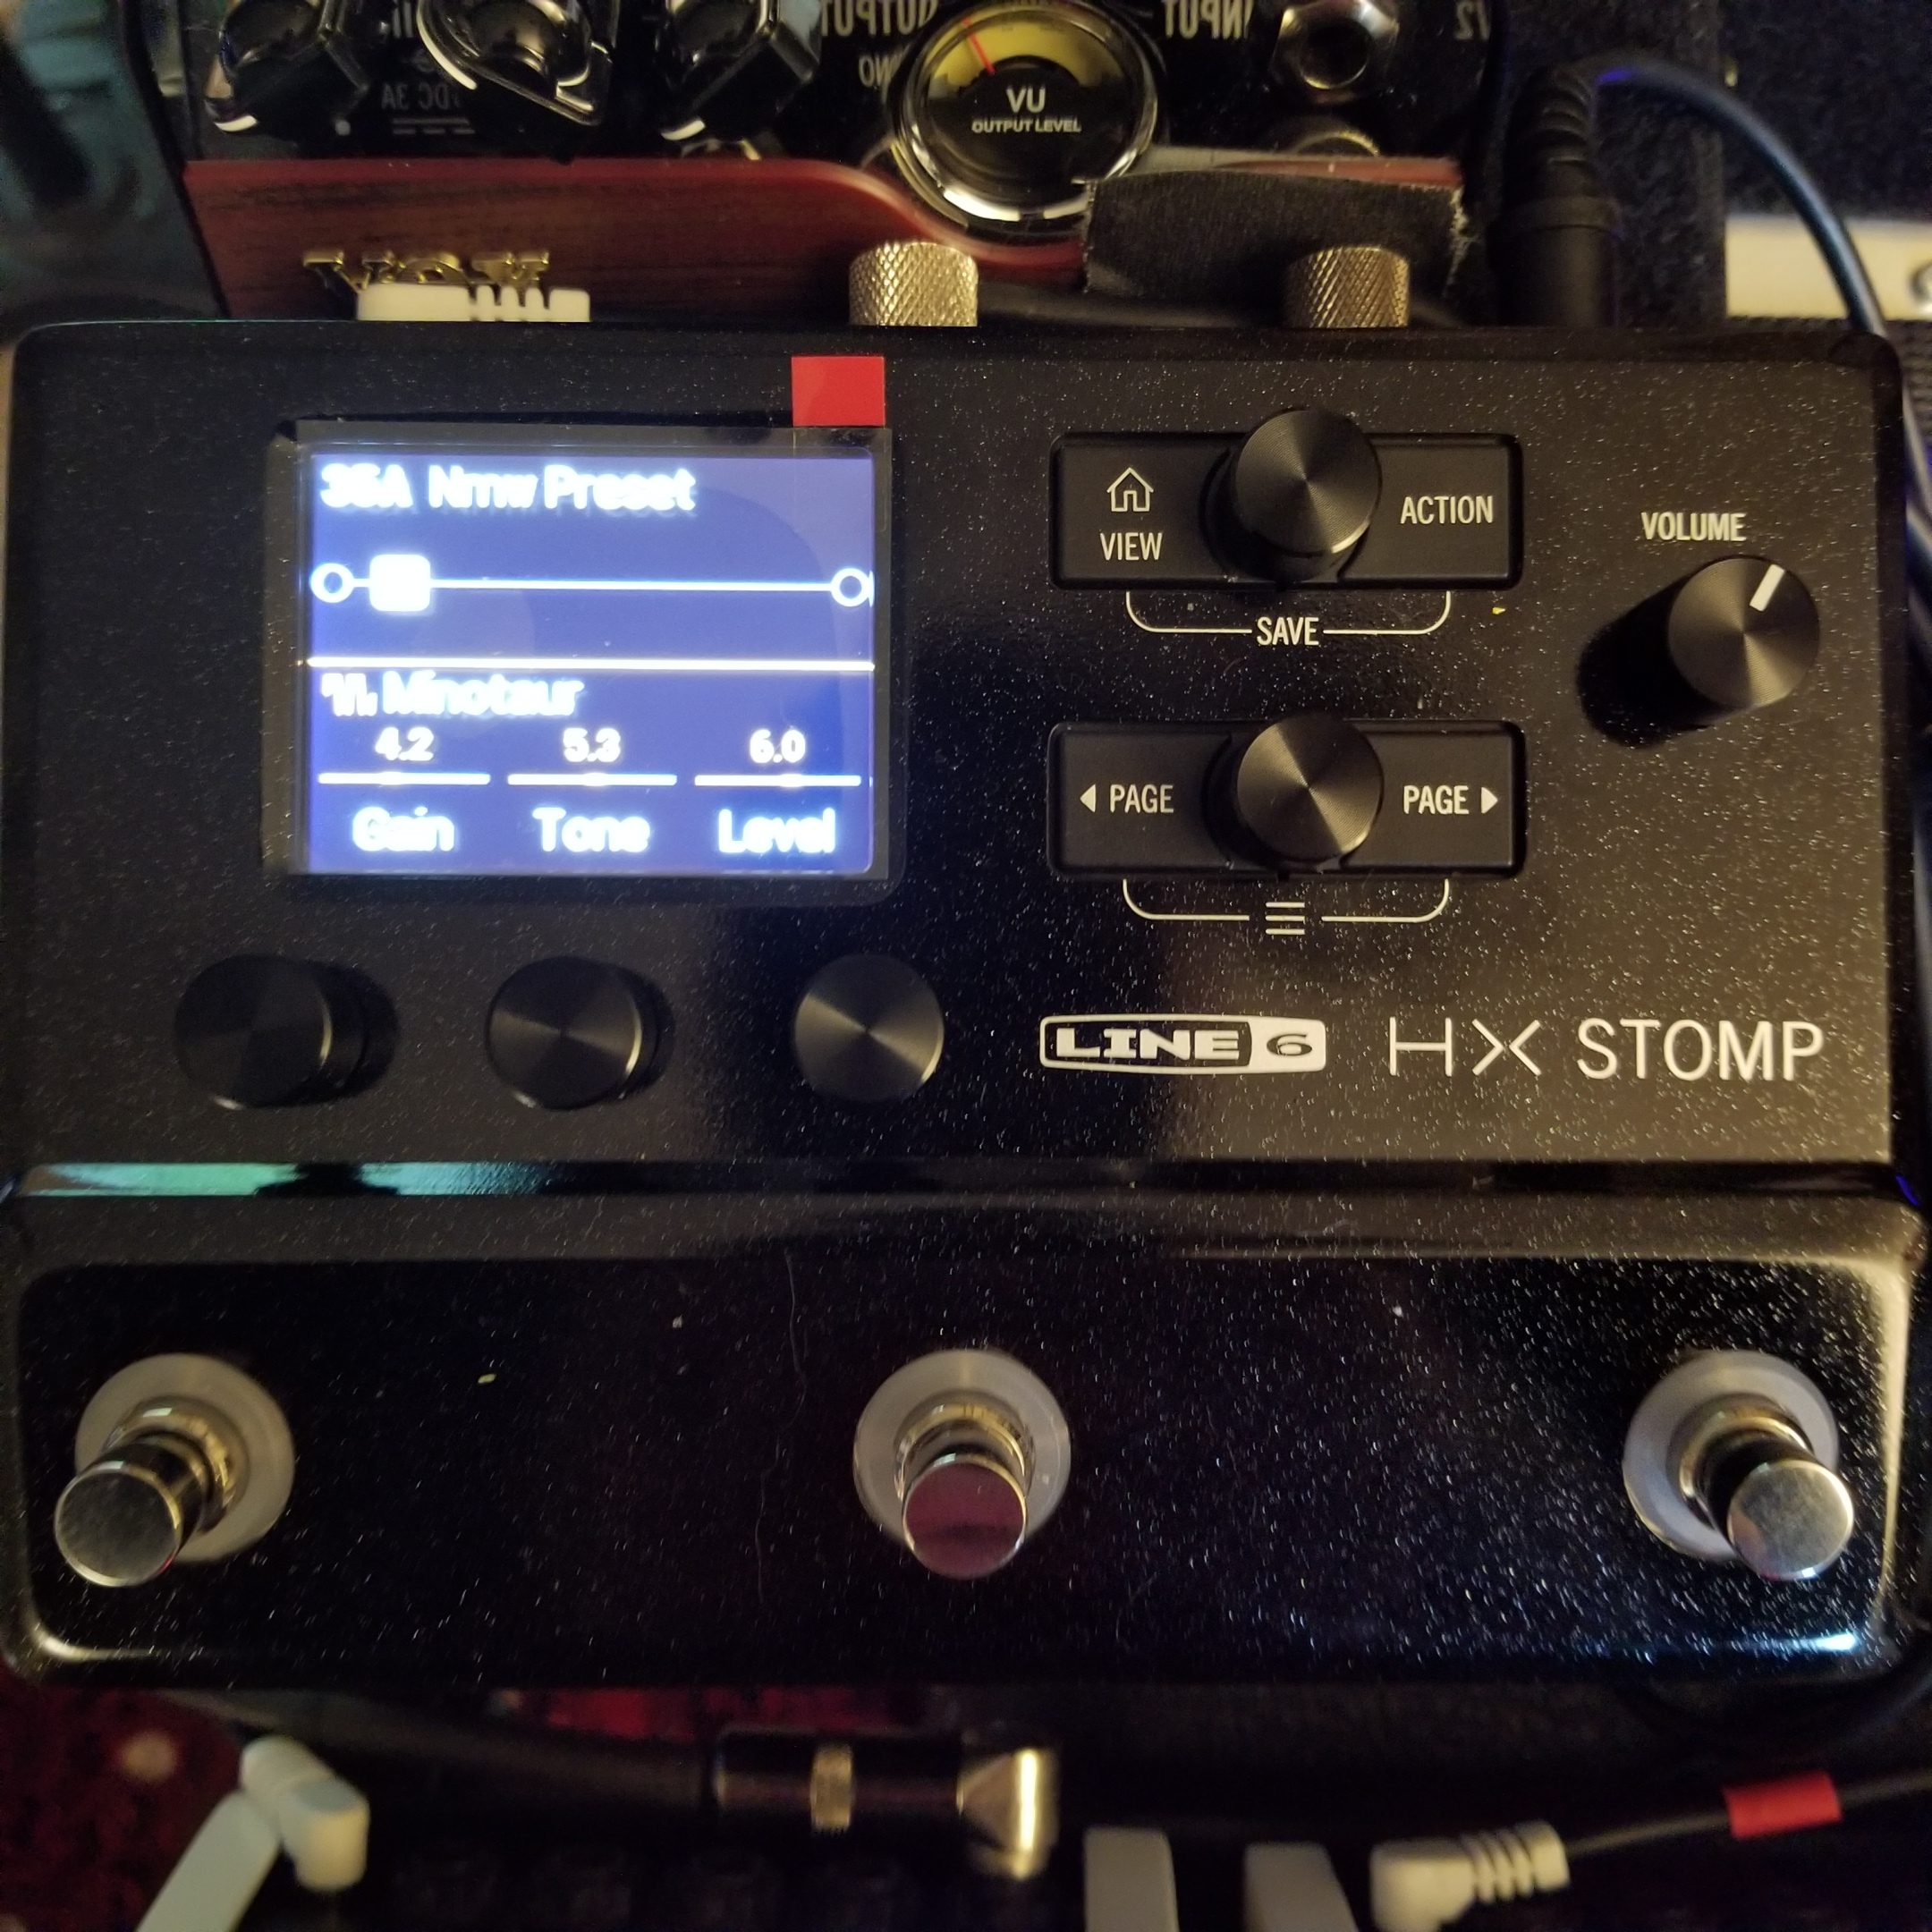 NEW Line 6 HX Stomp Multi Effects Processor for Guitar, Bass and Keys